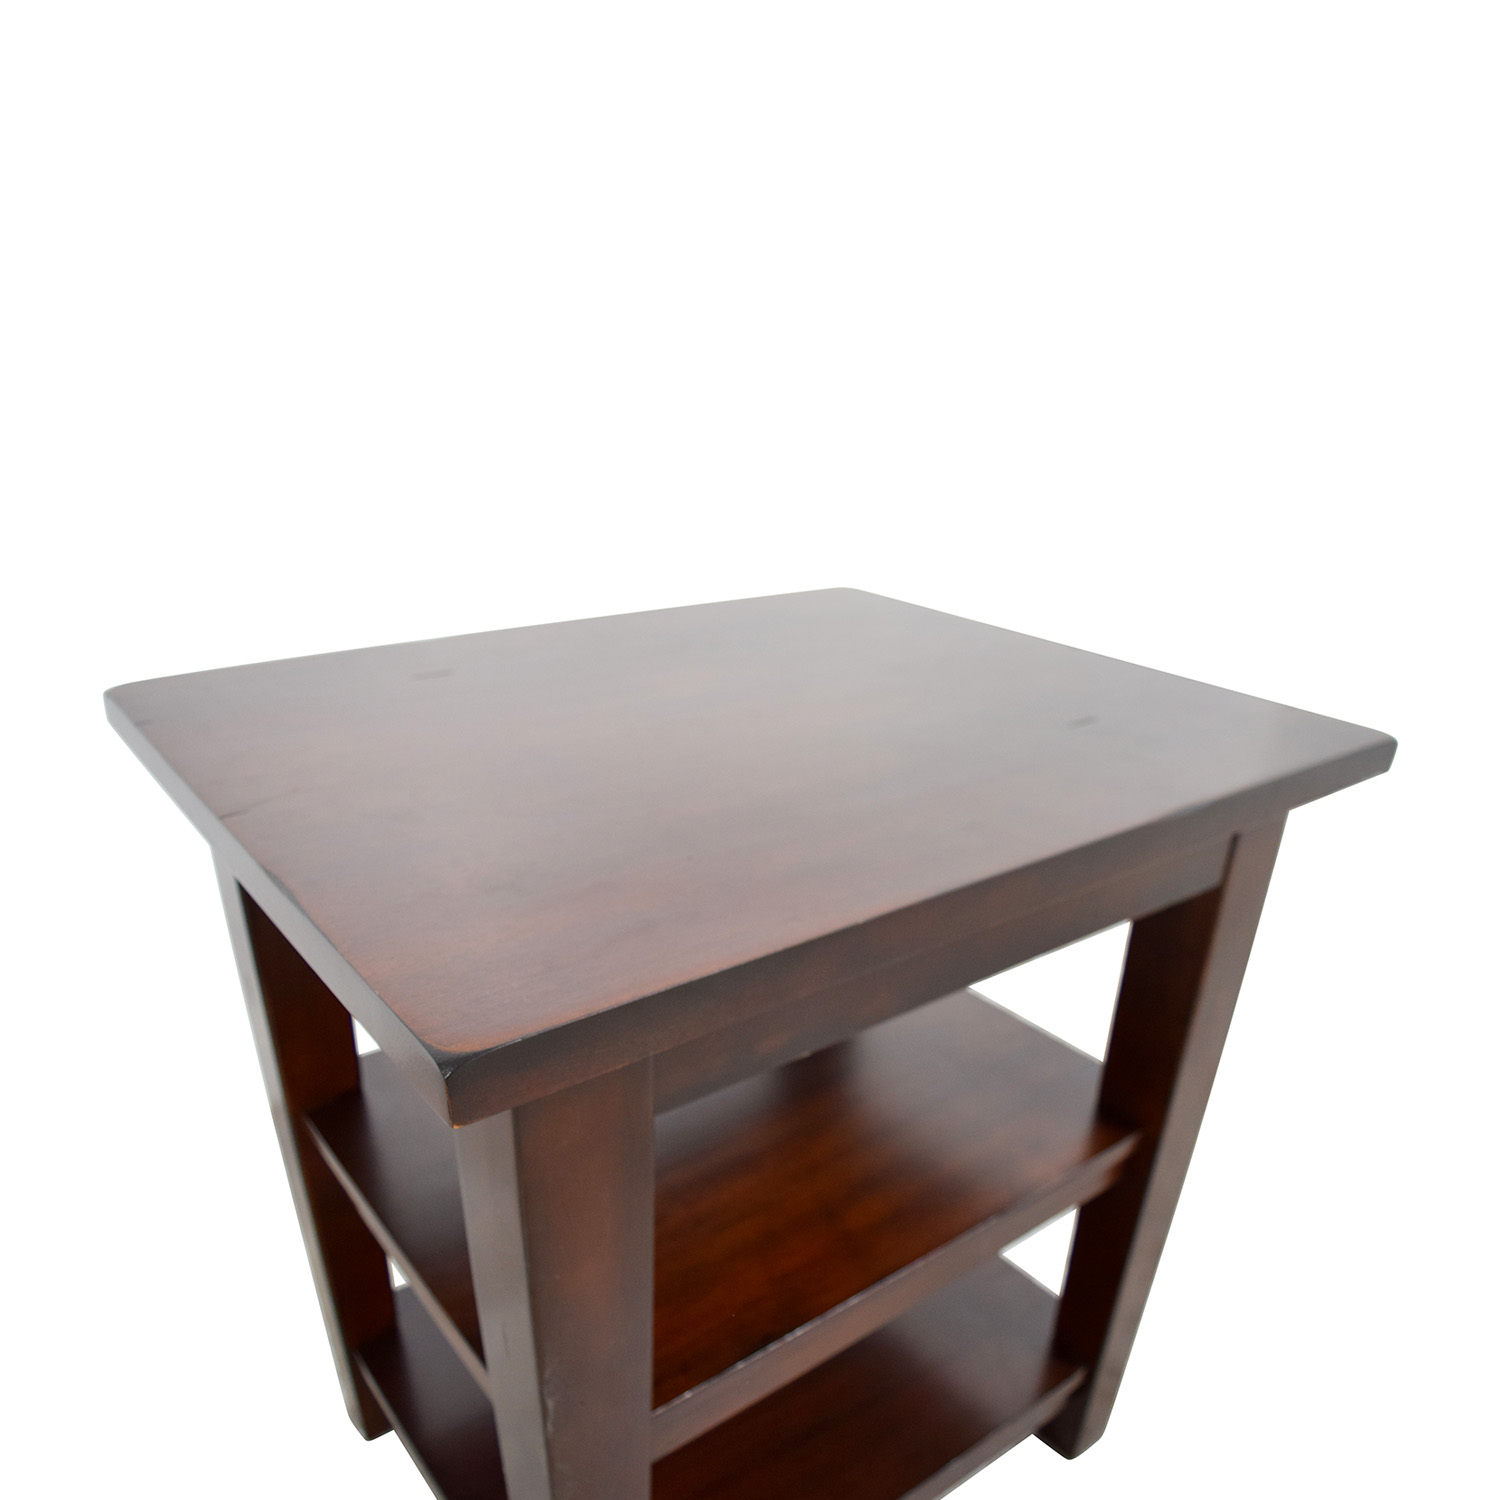 Pier 1 Pier 1 Wooden End Table discount